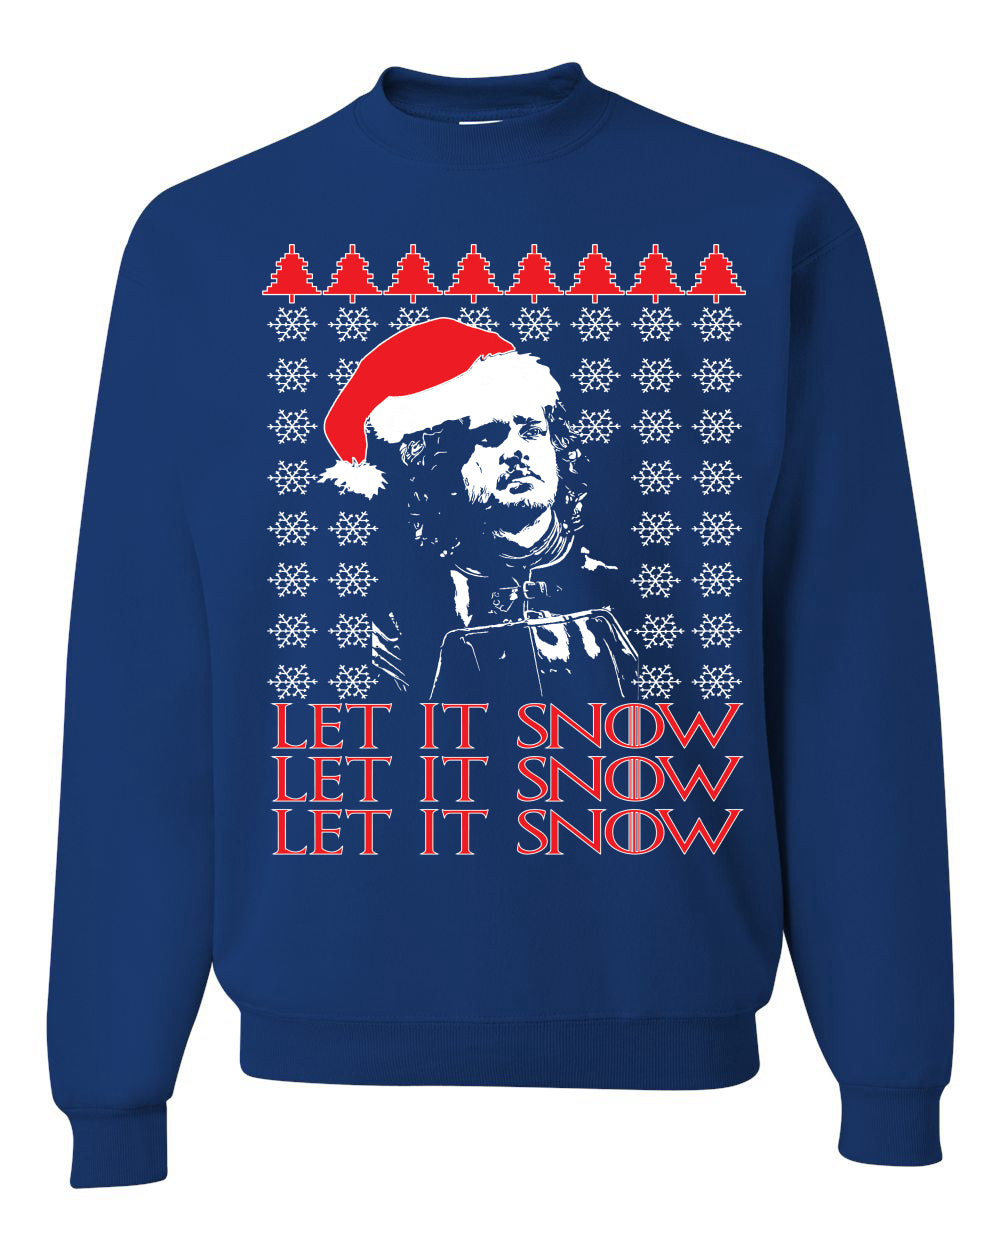 Let It Snow X 3 Jon Snow GoT Unisex Crewneck Graphic Sweatshirt